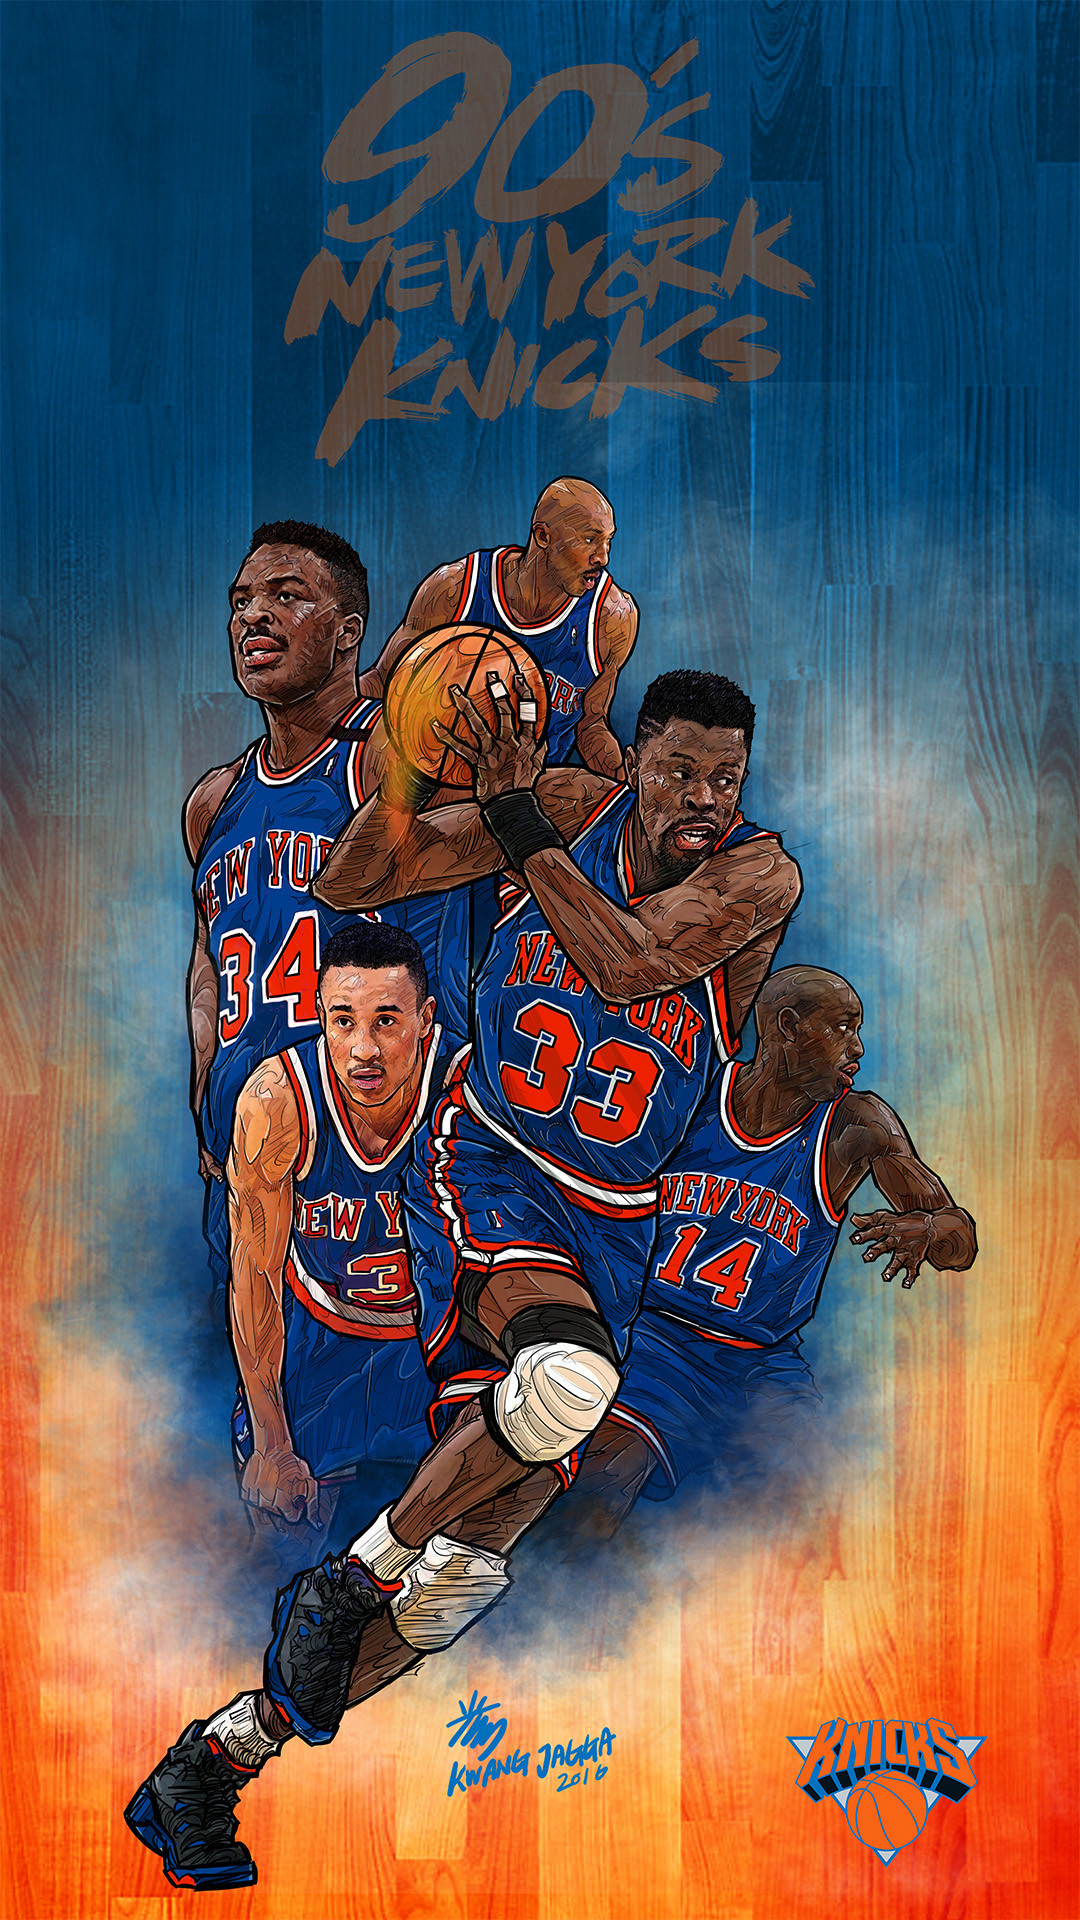 NBA Wallpapers 2018 New (64+ images)